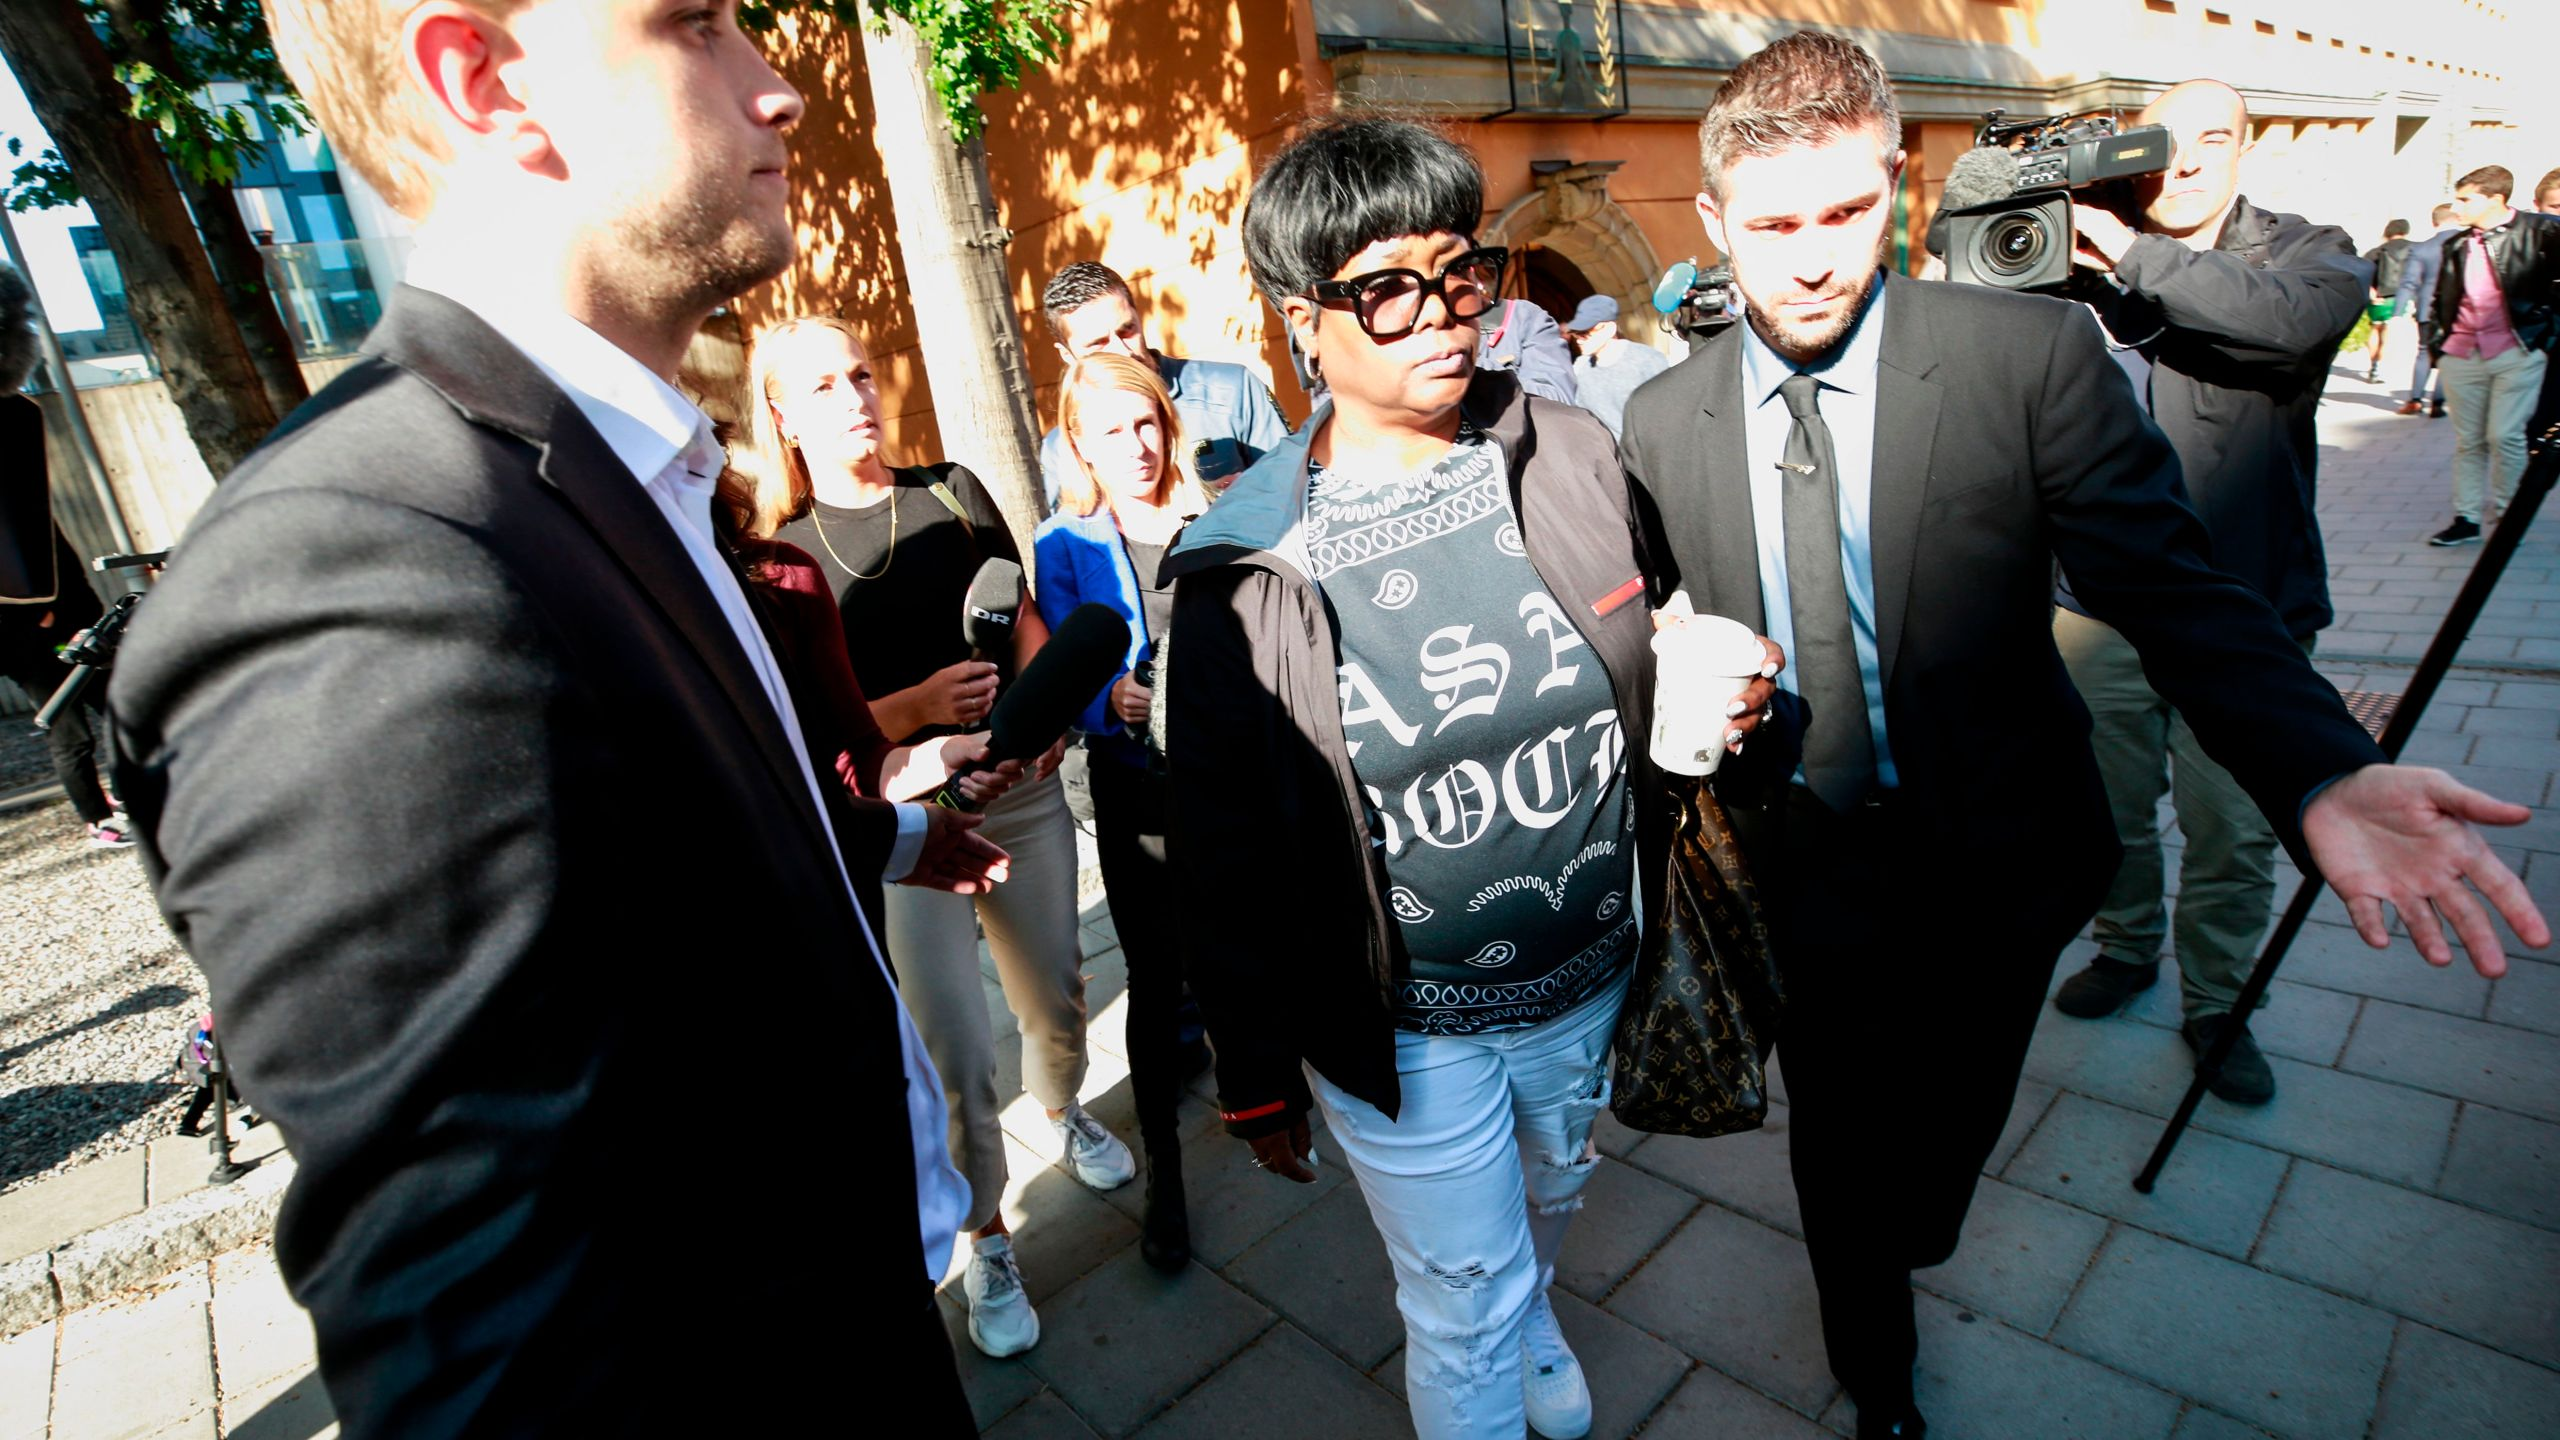 Renee Black (left), the mother of rapper A$AP Rocky leaves the district court after the second day of the rapper's trial over a June street brawl on Aug. 1, 2019 in Stockholm. (Credit: FREDRIK PERSSON/AFP/Getty Images)